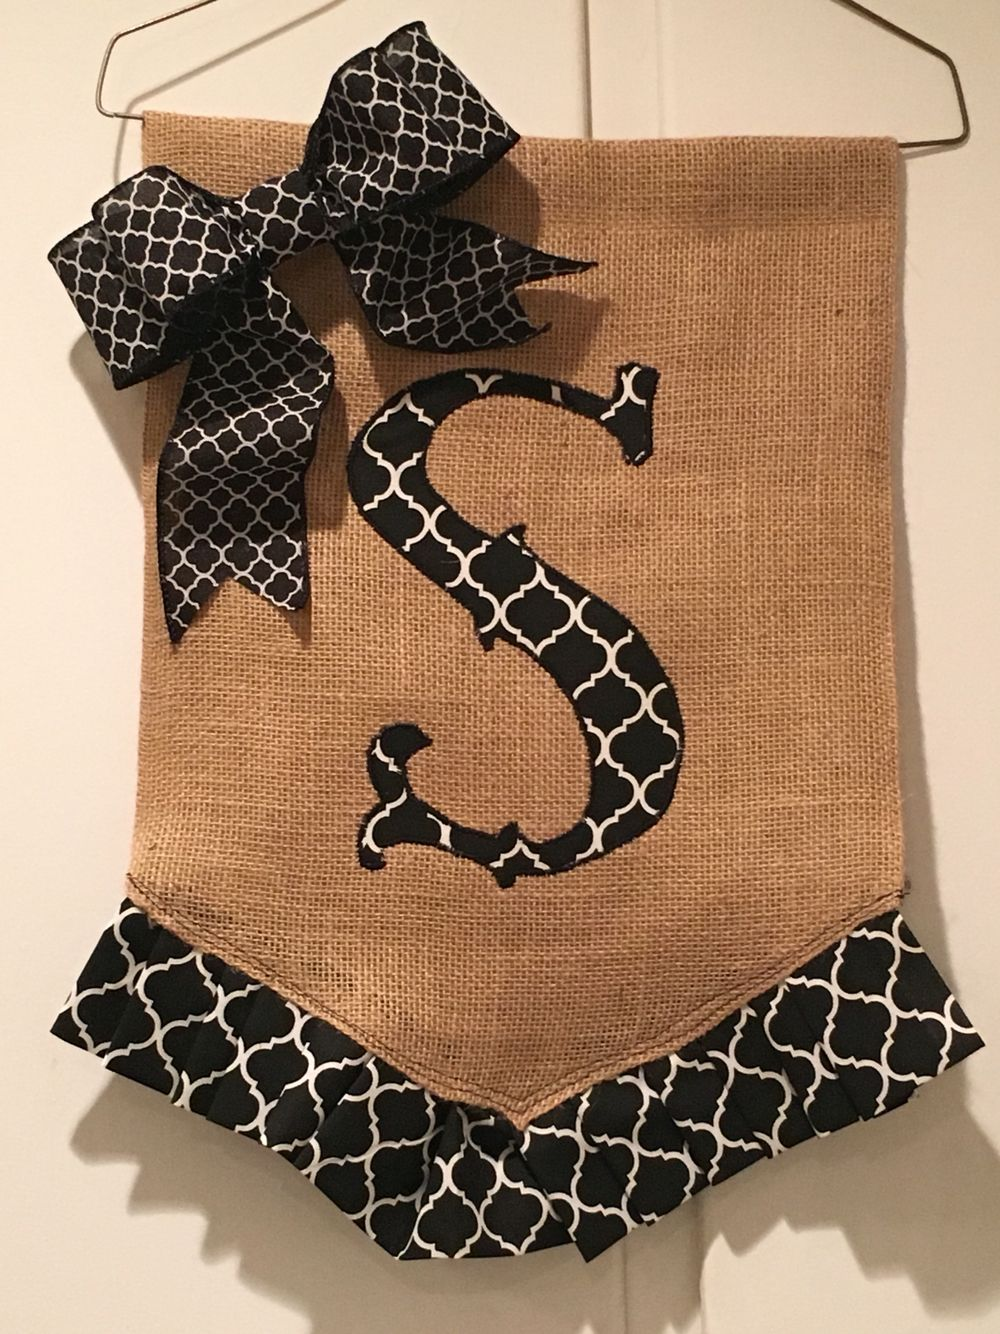 Diy Initial Burlap Garden Flag My Completed Pinterest Projects